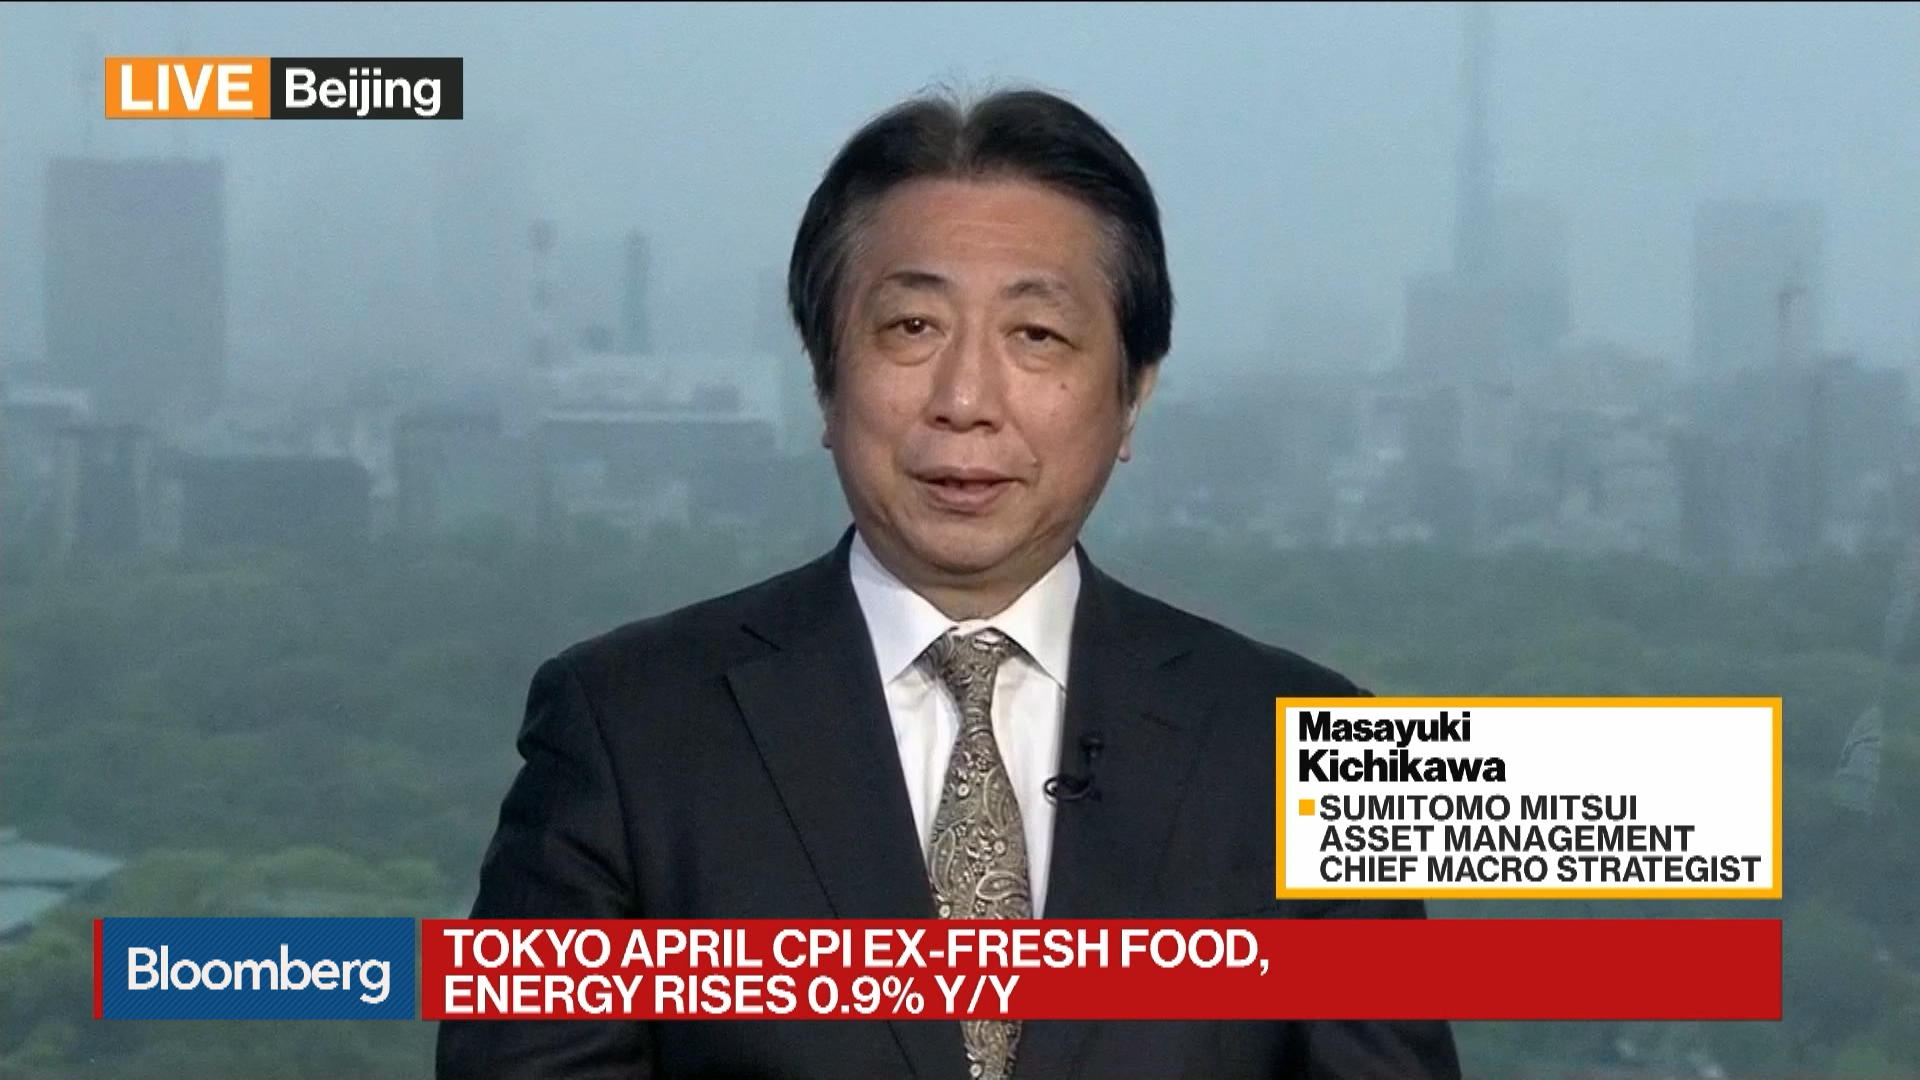 Japan's Unemployment Rate Will Stay Very Low, Says Sumitomo Mitsui's Kichikawa